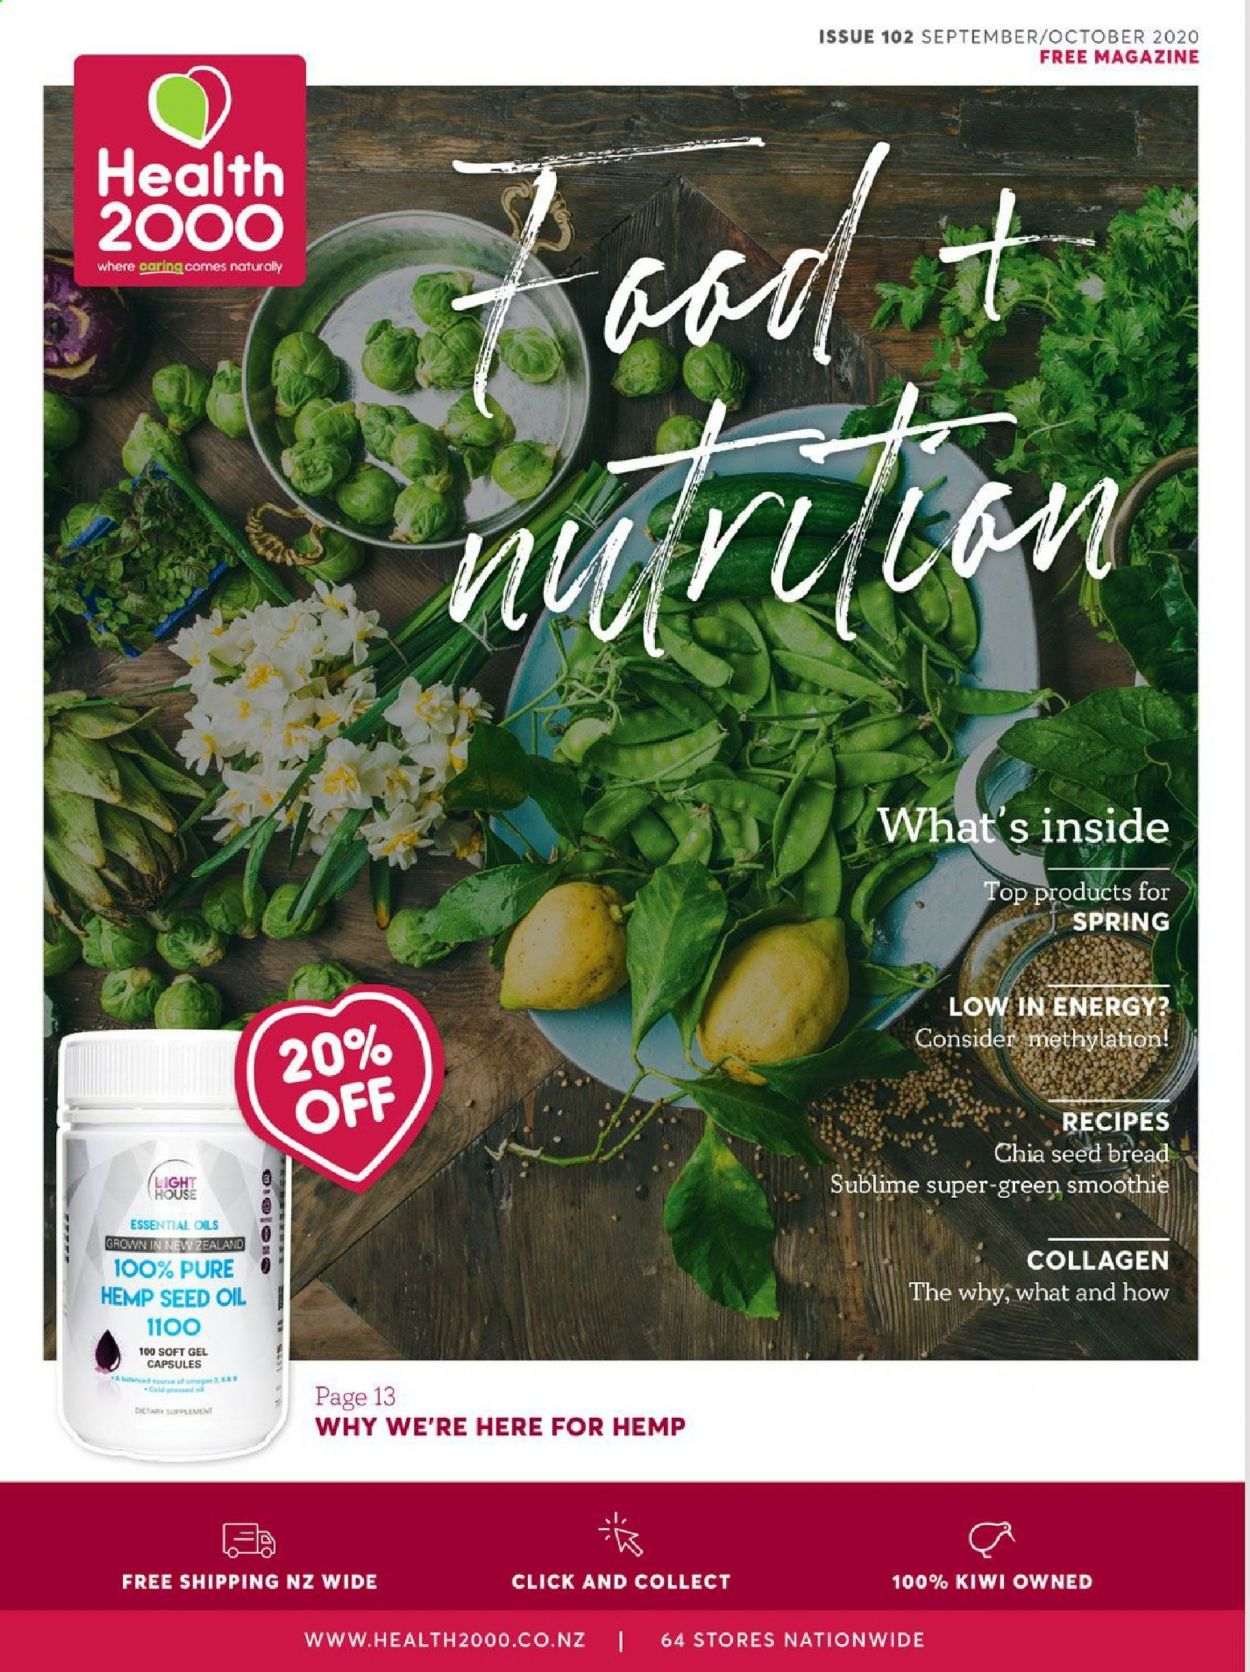 Health 2000 mailer - 01.09.2020 - 31.10.2020 - Sales products - seed, smoothie. Page 1.